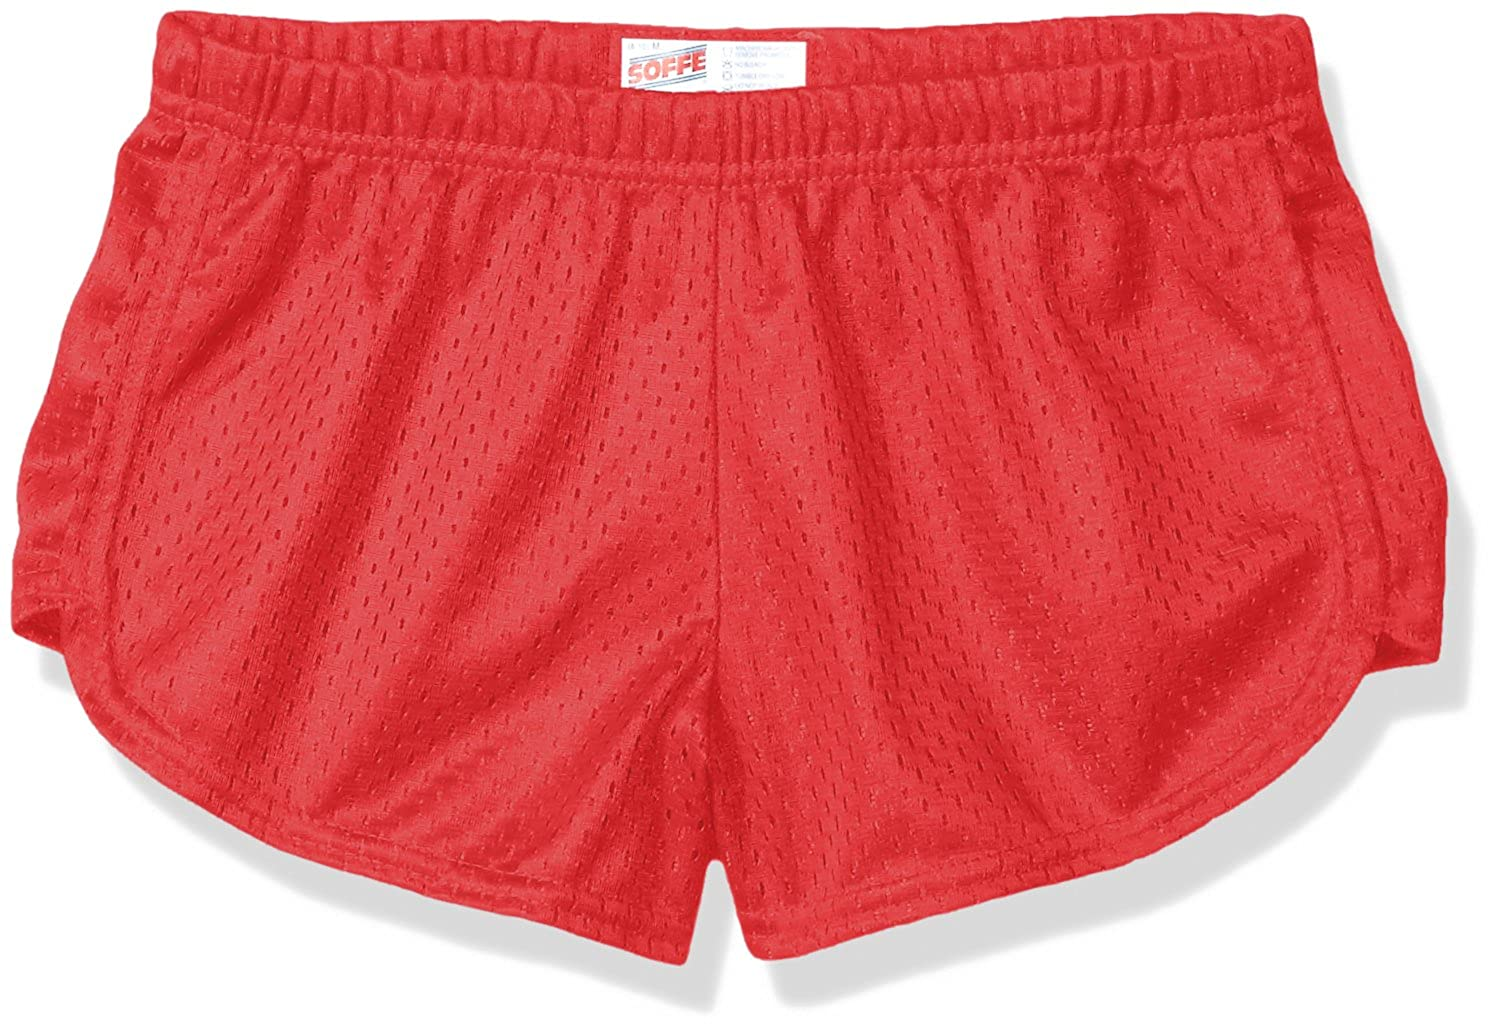 Soffe Girls' Big BRD MSH Short 2 Poly Soffe Children' s Apparel 461G